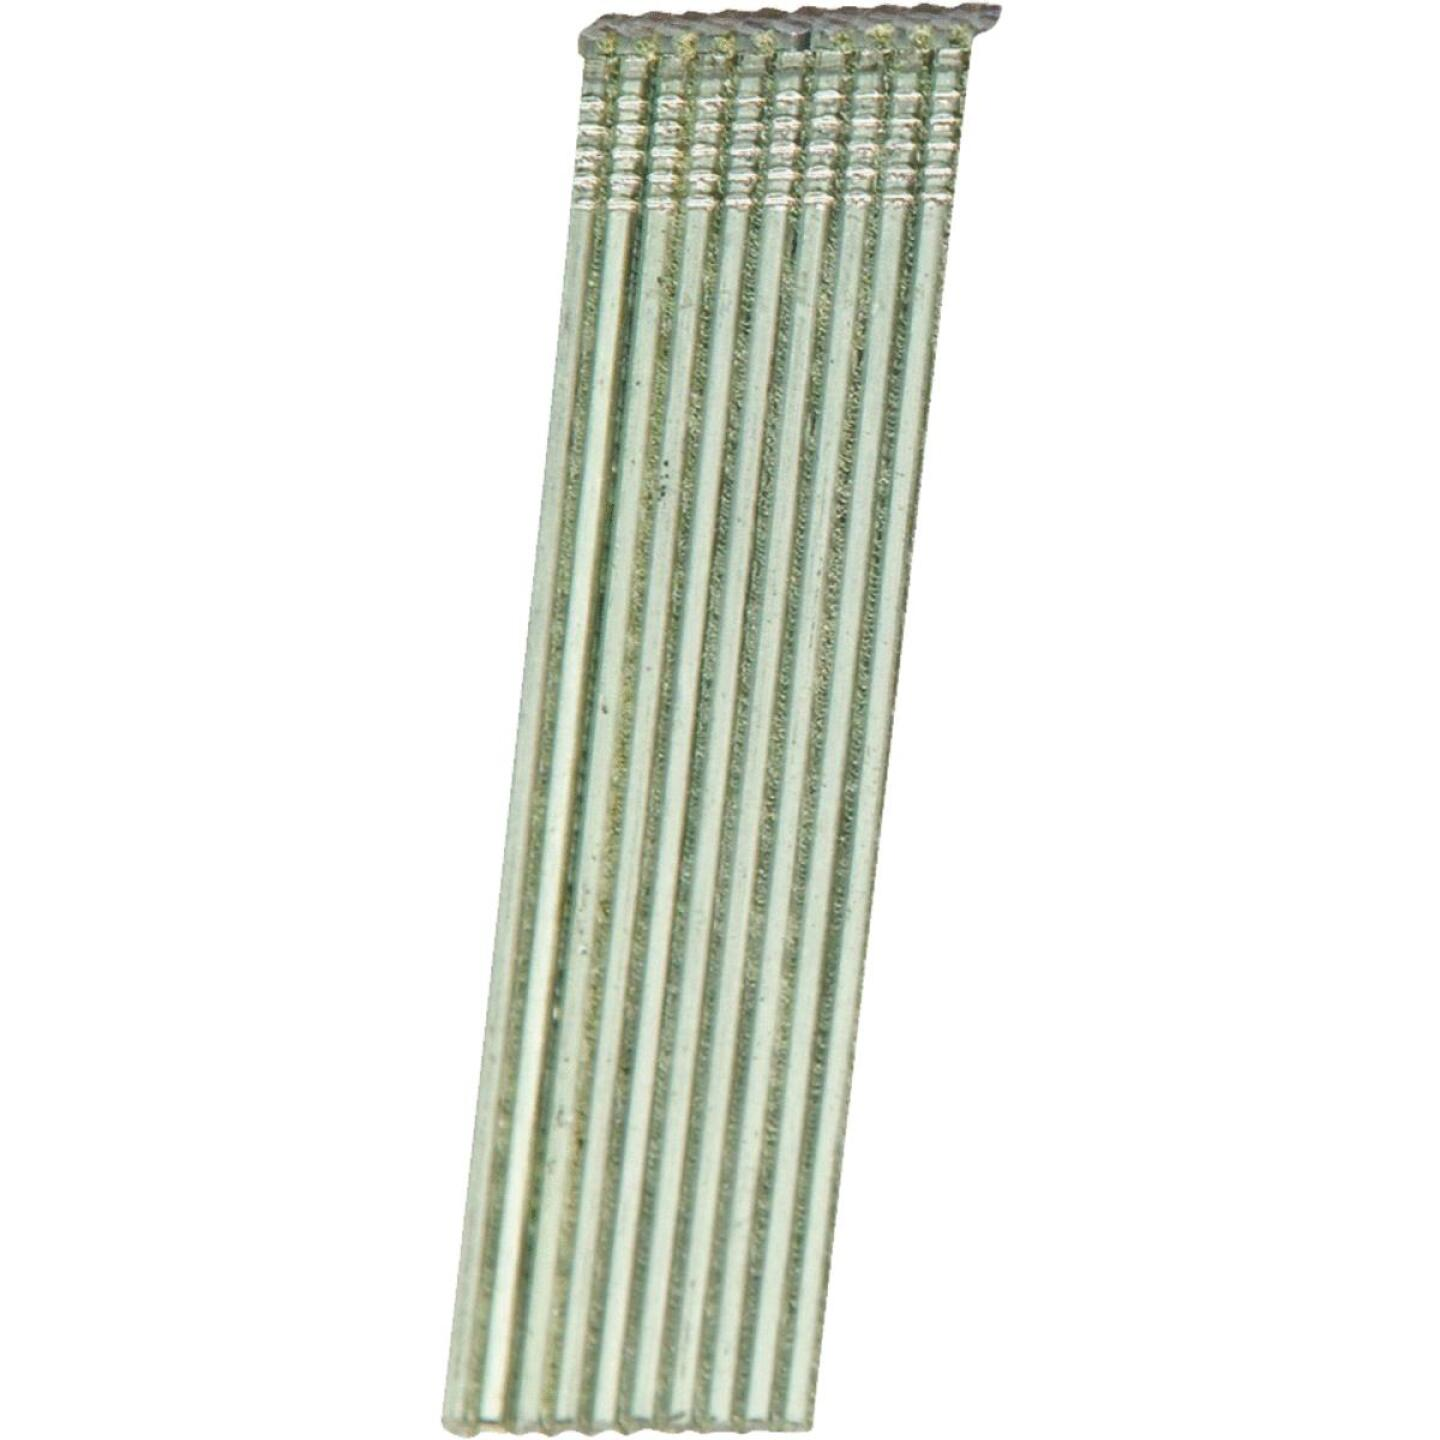 Grip-Rite 16-Gauge Galvanized 20 Degree Angled Finish Nail, 1-1/2 In. (2000 Ct.) Image 1